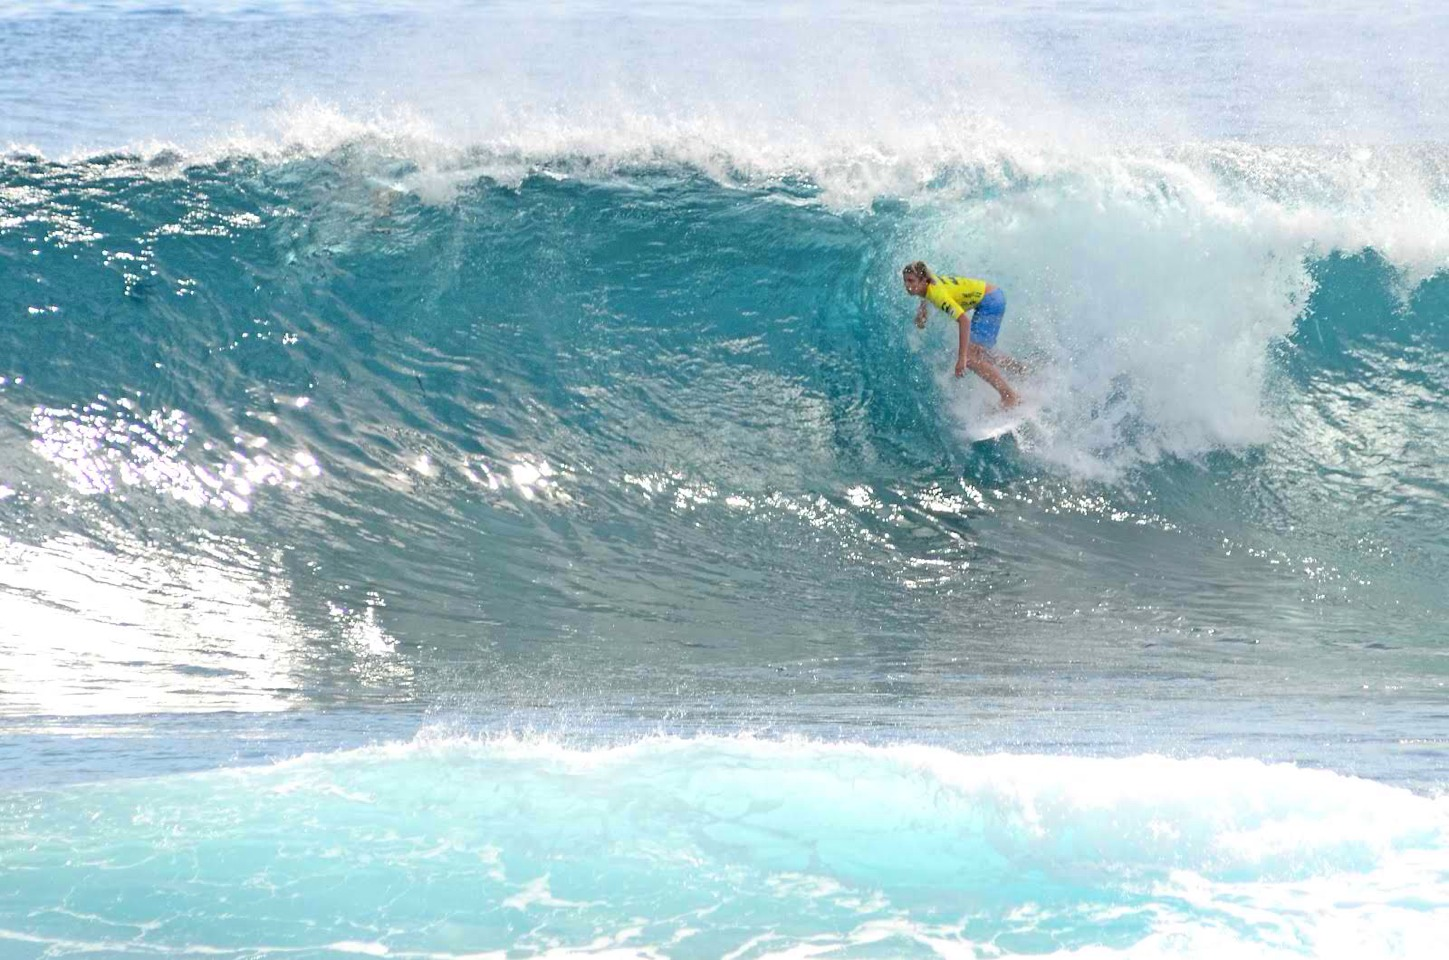 Siargao is one of the best known surfing waves in the Philippines